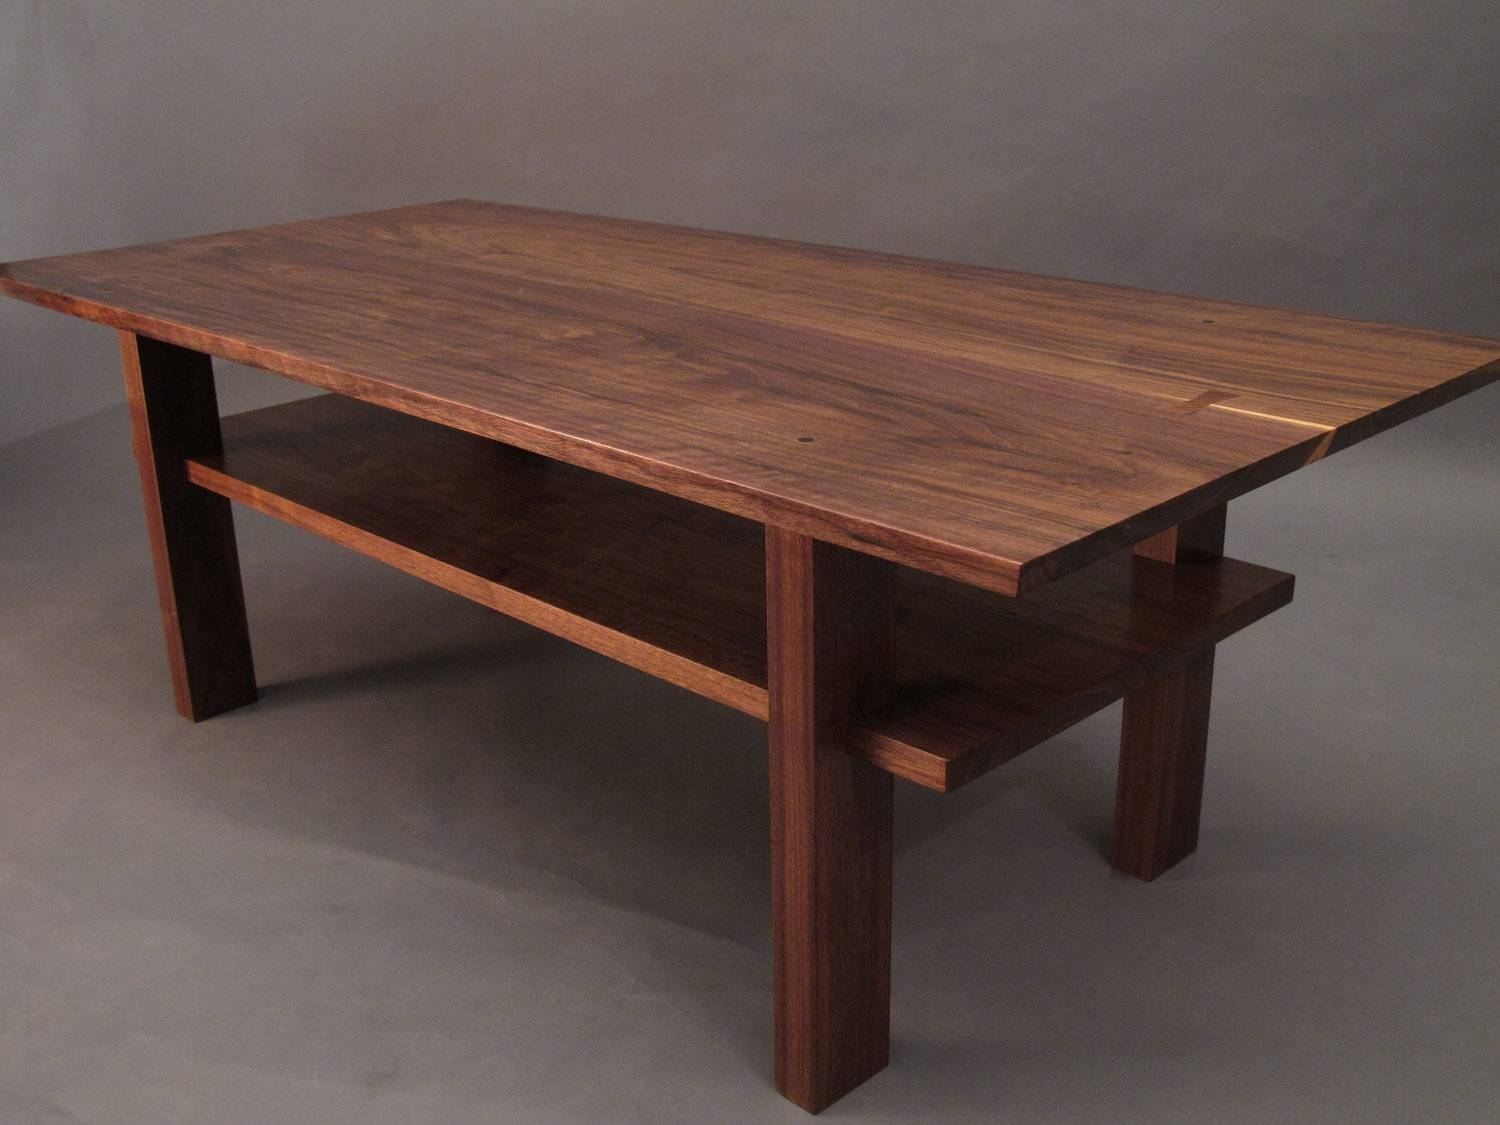 Walnut Coffee Table Small Wood Tables For Living Room Narrow With Small Wood Coffee Tables (View 3 of 30)